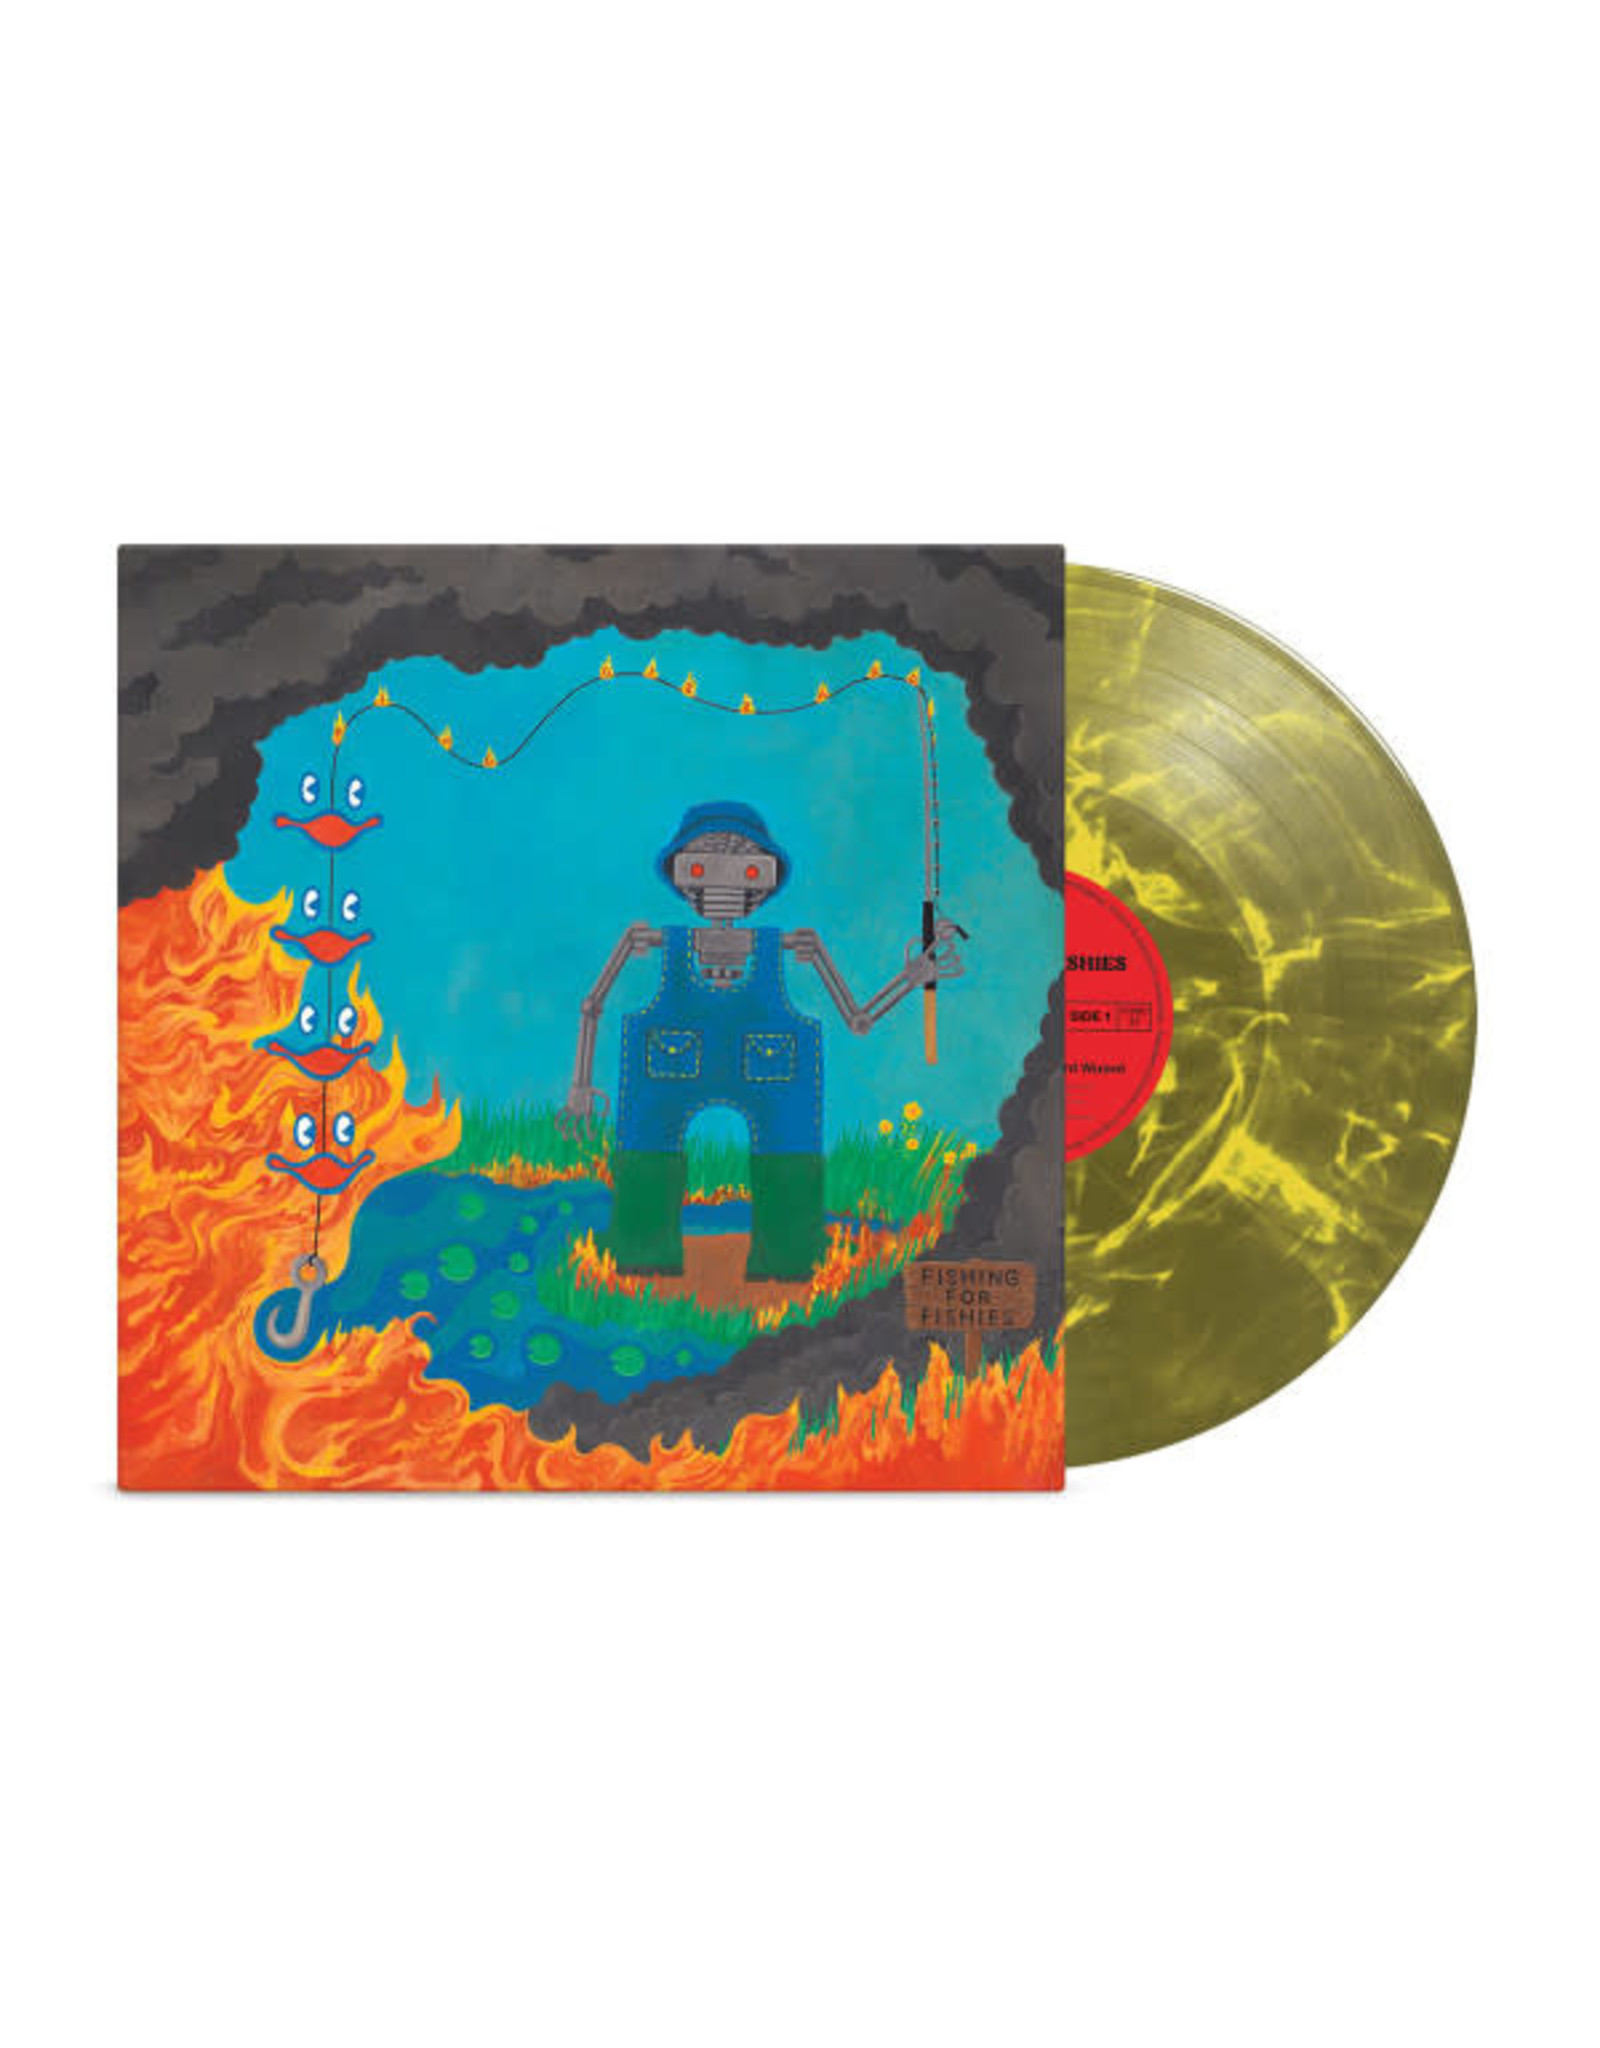 King Gizzard & The Lizard Wizard - Fishing For Fishies (U.S. Toxic Landfill Edition)